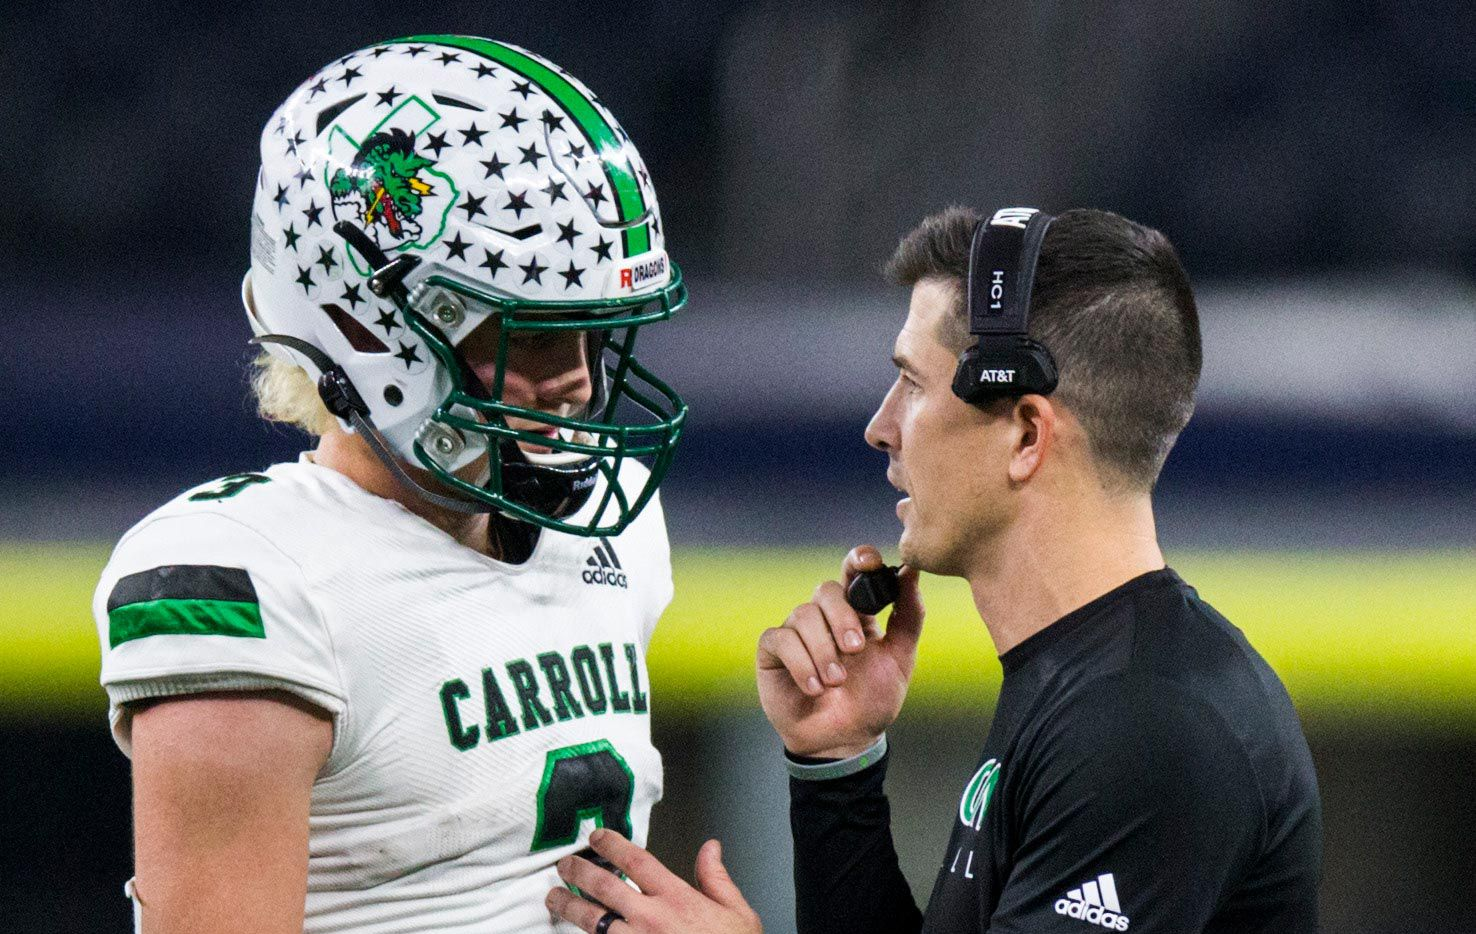 Southlake Carroll quarterback Quinn Ewers (3) talks with head coach Riley Dodge during the fourth quarter of a Class 6A Division I area-round high school football playoff game between Southlake Carroll and DeSoto on Friday, November 22, 2019 at AT&T Stadium in Arlington. (Ashley Landis/The Dallas Morning News)